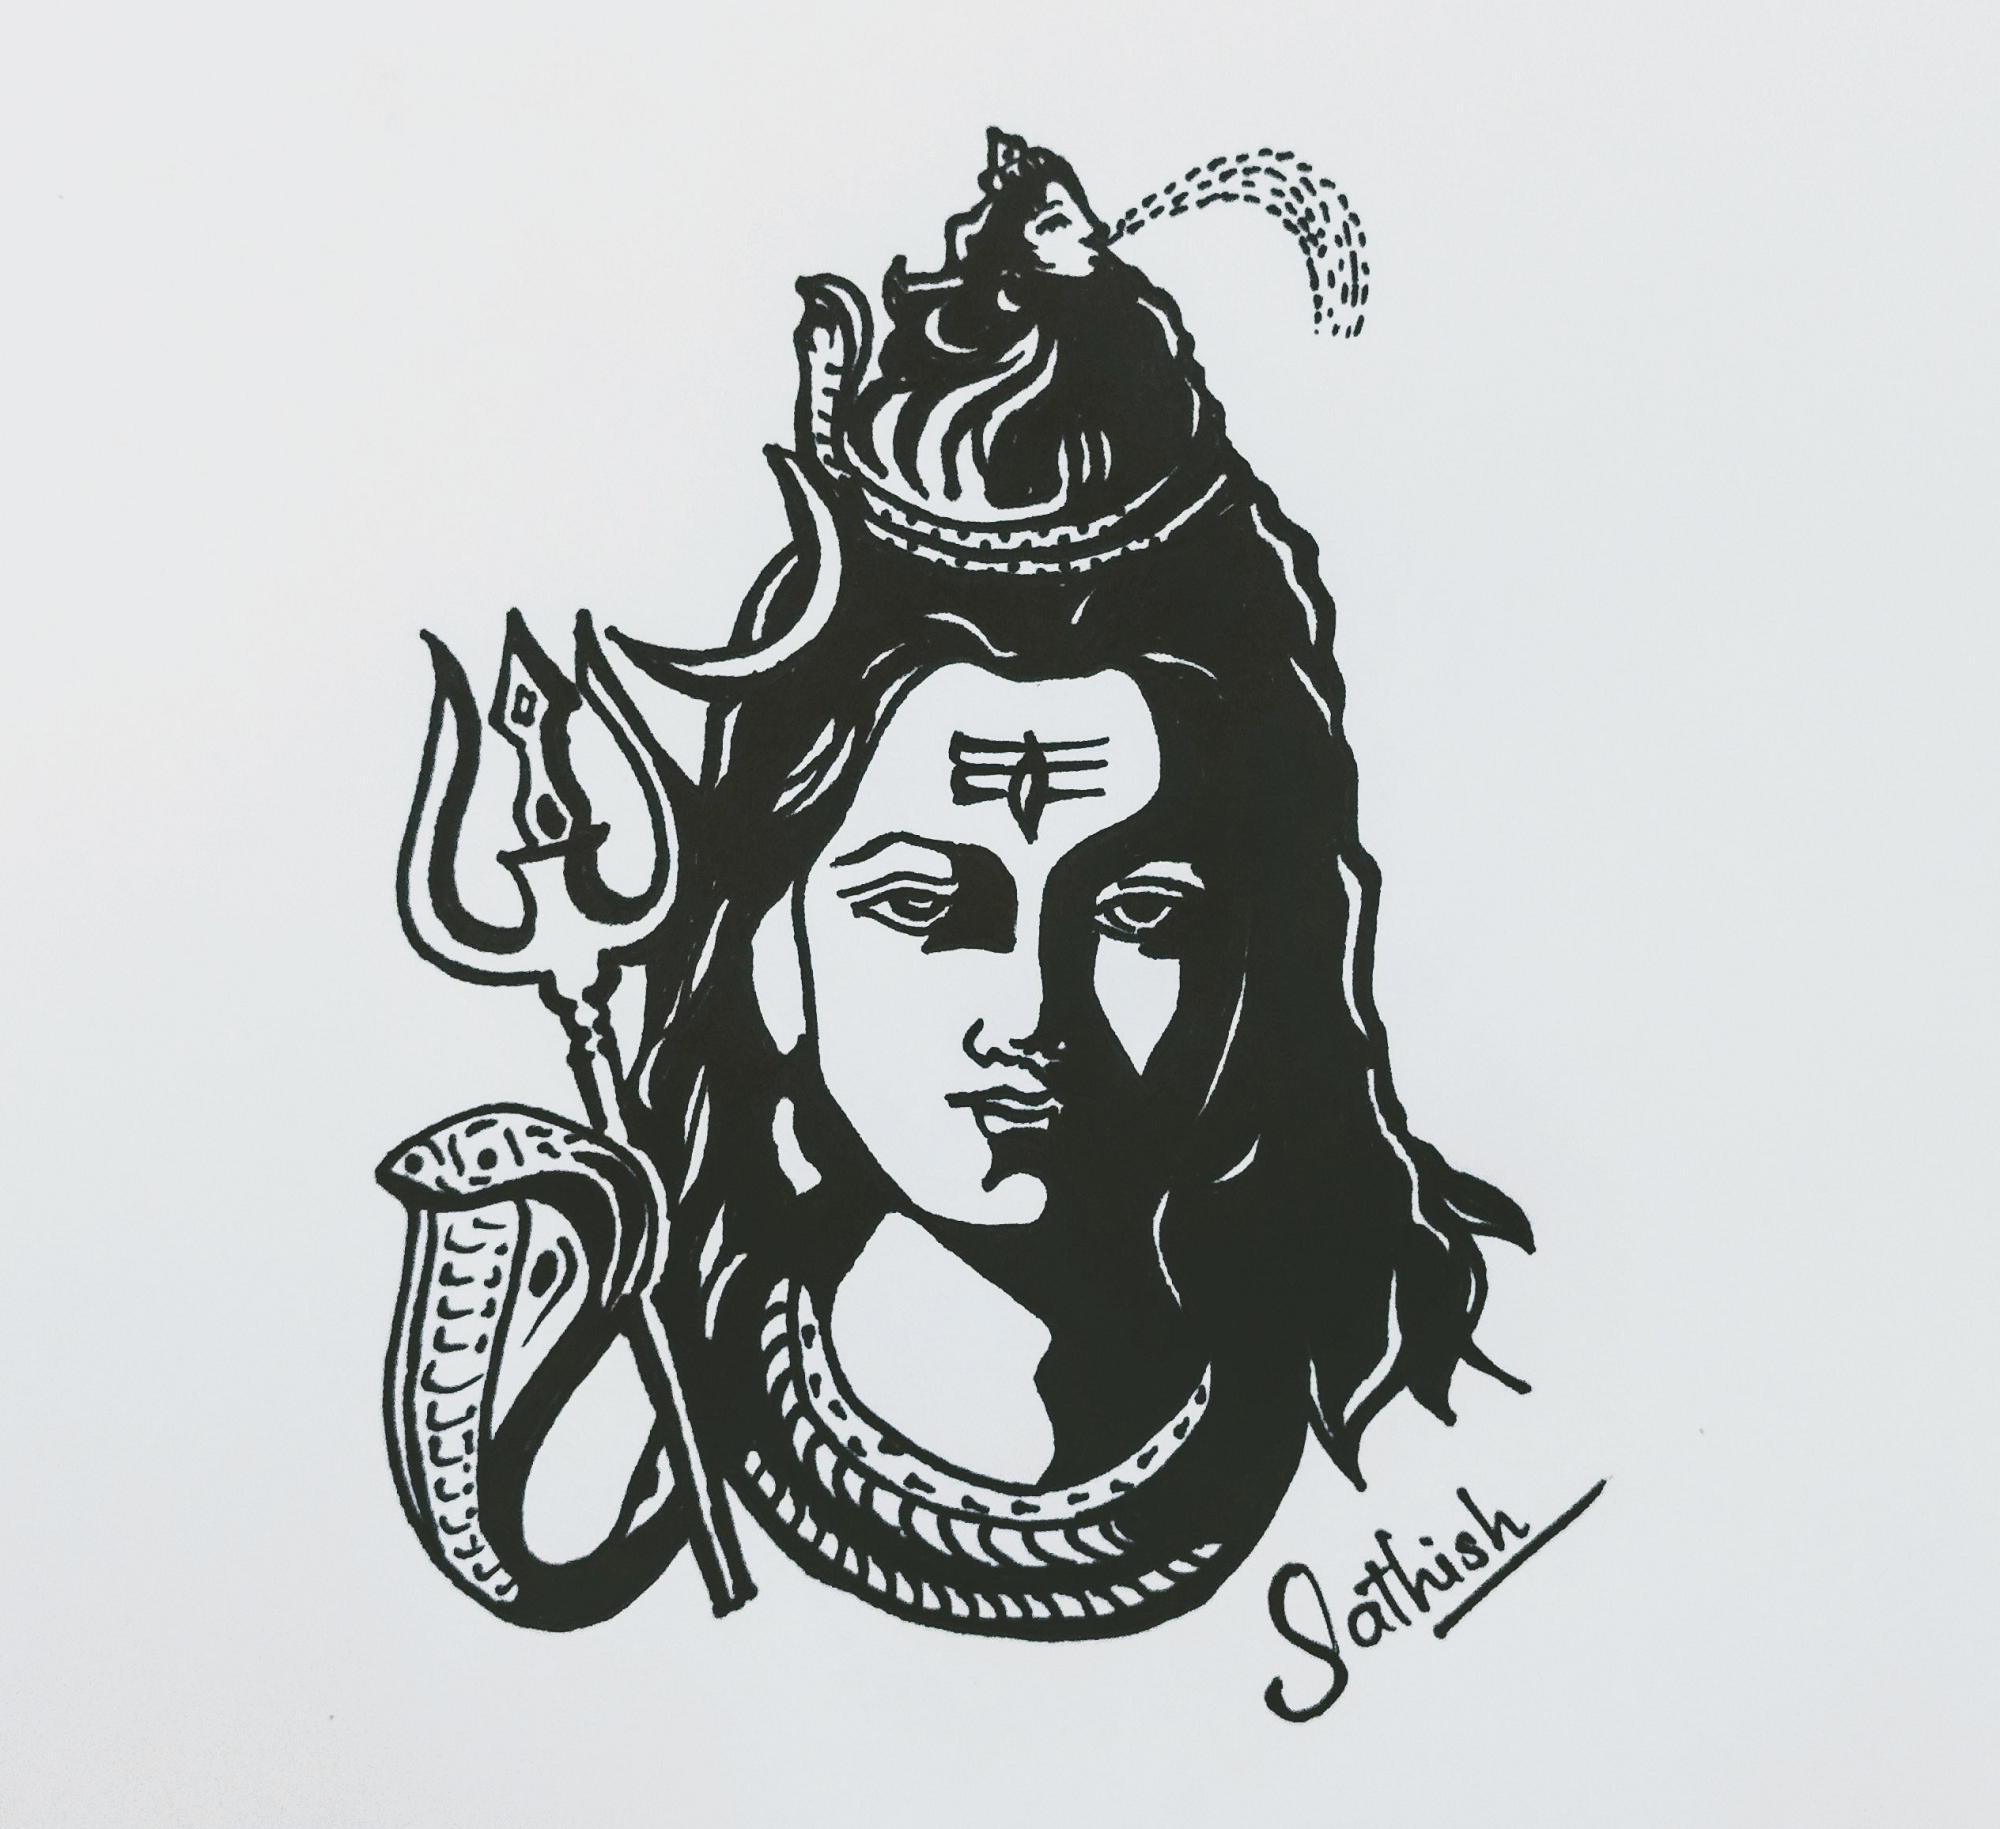 Snake sketch pen sketch lord shiva sketch realistic drawings my drawings